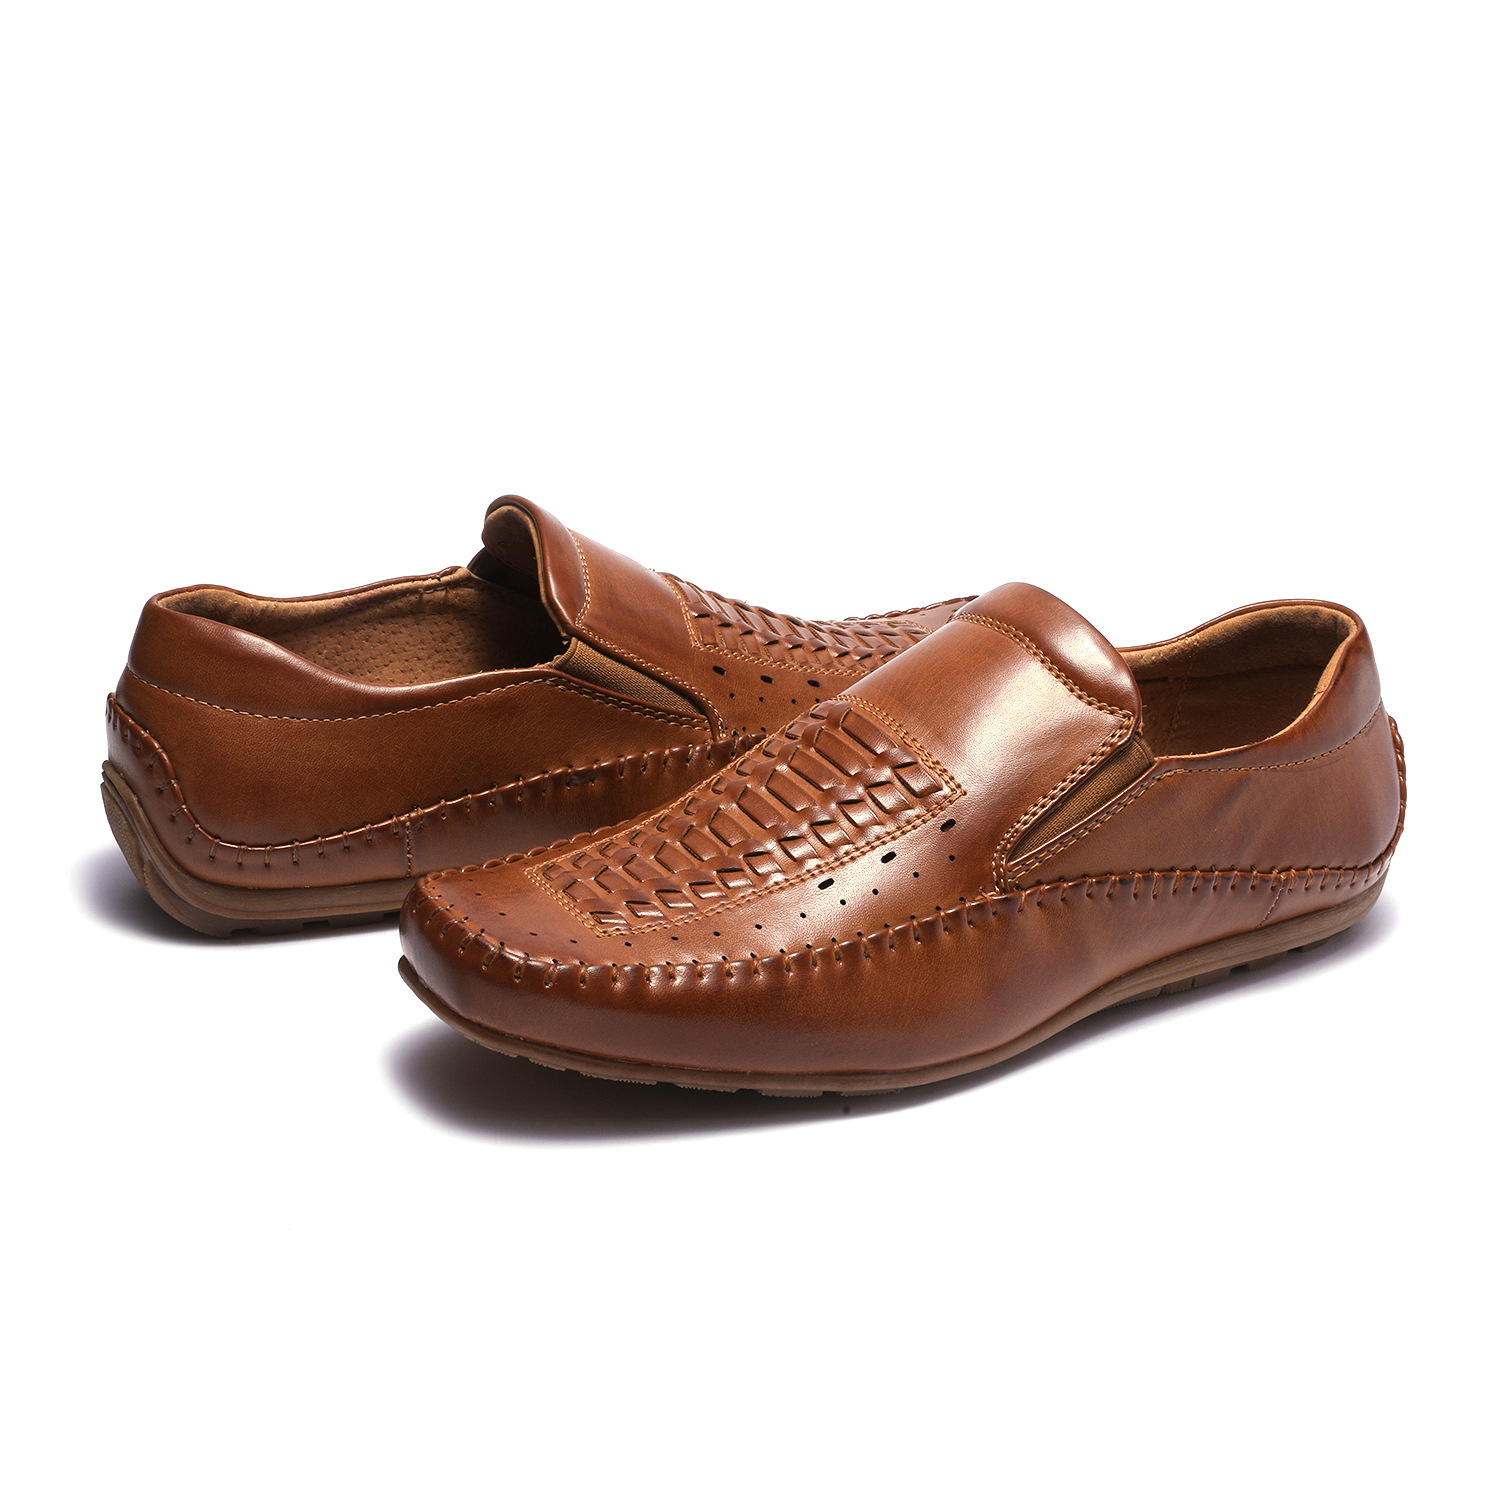 Bruno-Marc-Mens-Penny-Light-Loafers-Moccasins-Driving-Flats-Slip-On-Casual-Shoes thumbnail 24